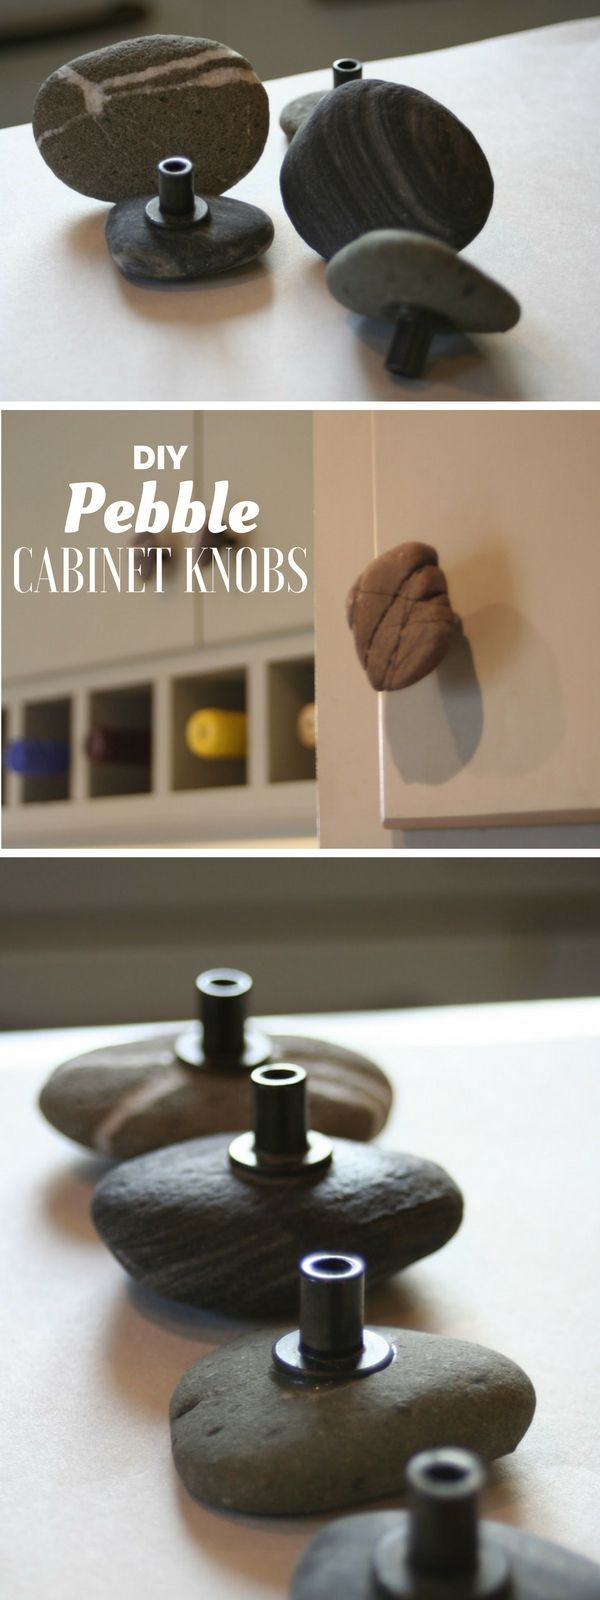 How to make easy DIY cabinet handles from rocks @istandarddesign